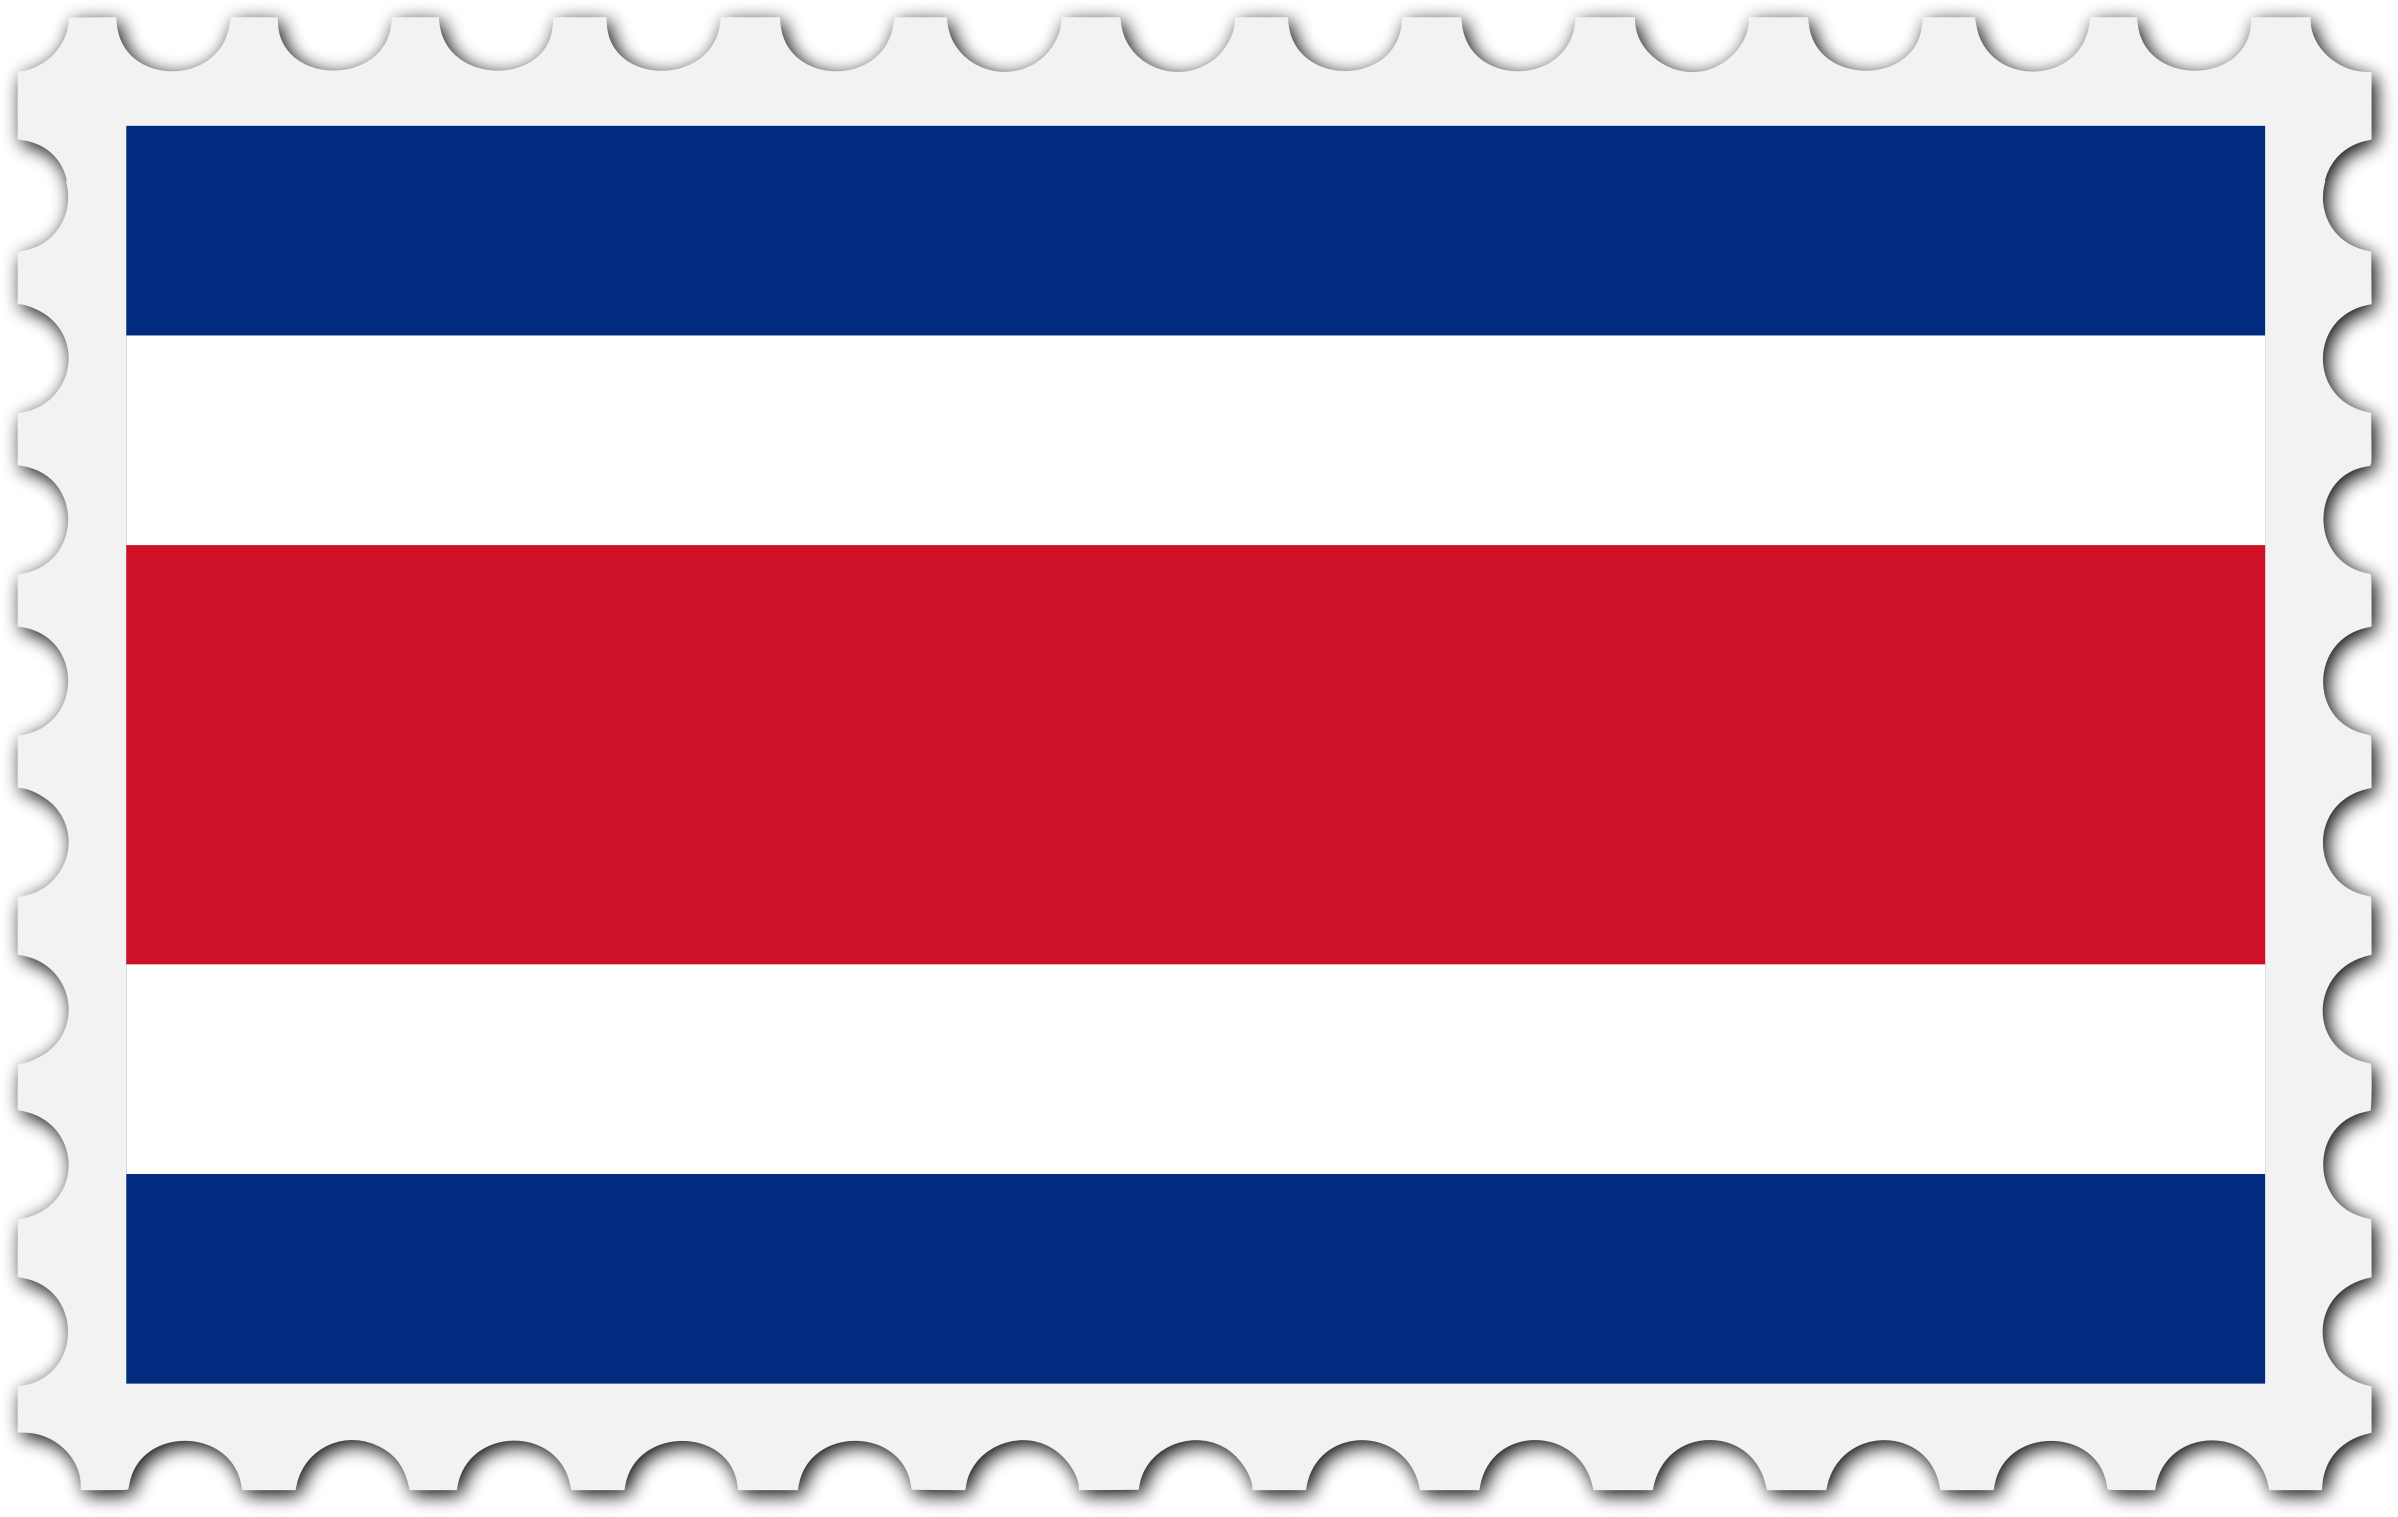 Costa Rica flag stamp by Firkin